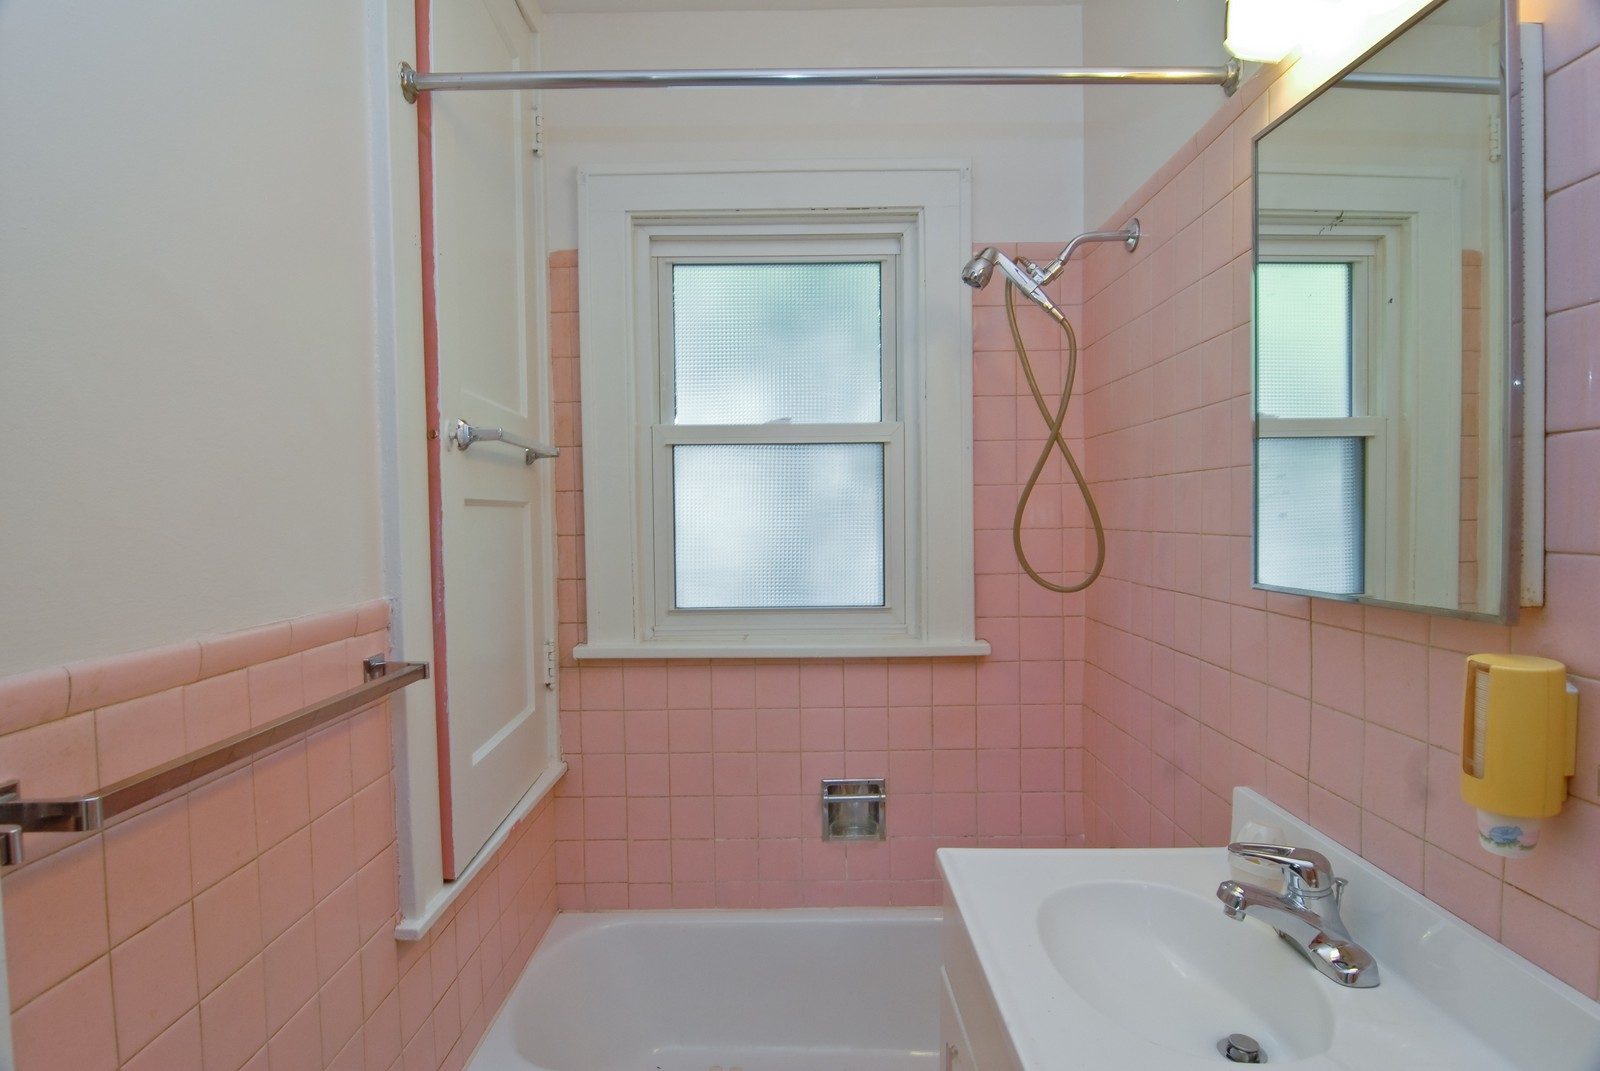 Real Estate Photography - 5525 Fremont Ave, Minneapolis, MN, 55419 - Bathroom